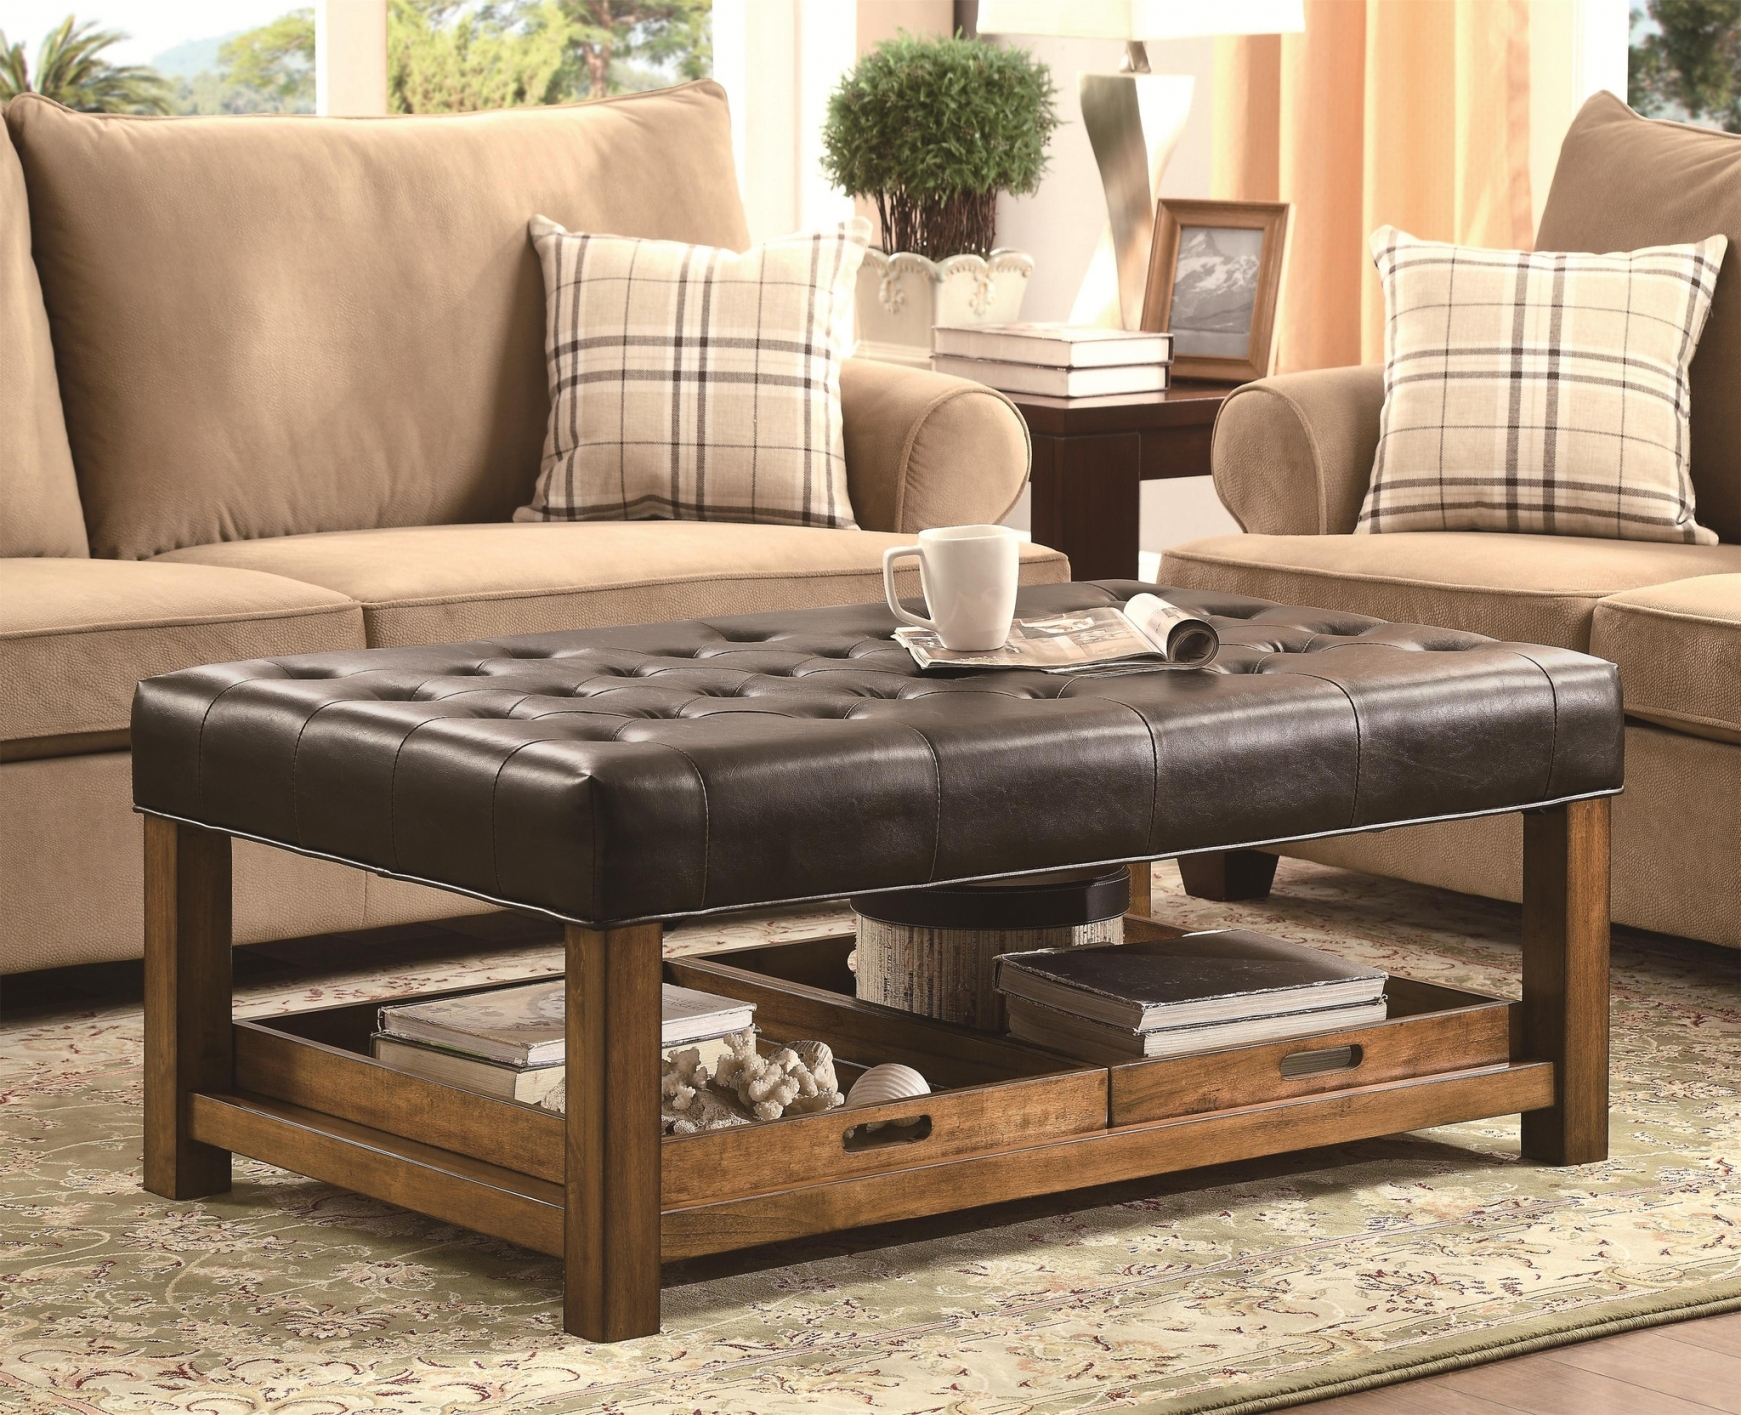 Large Tufted Leather Ottoman | Large Ottoman Coffee Table | Footstool Coffee Table Storage